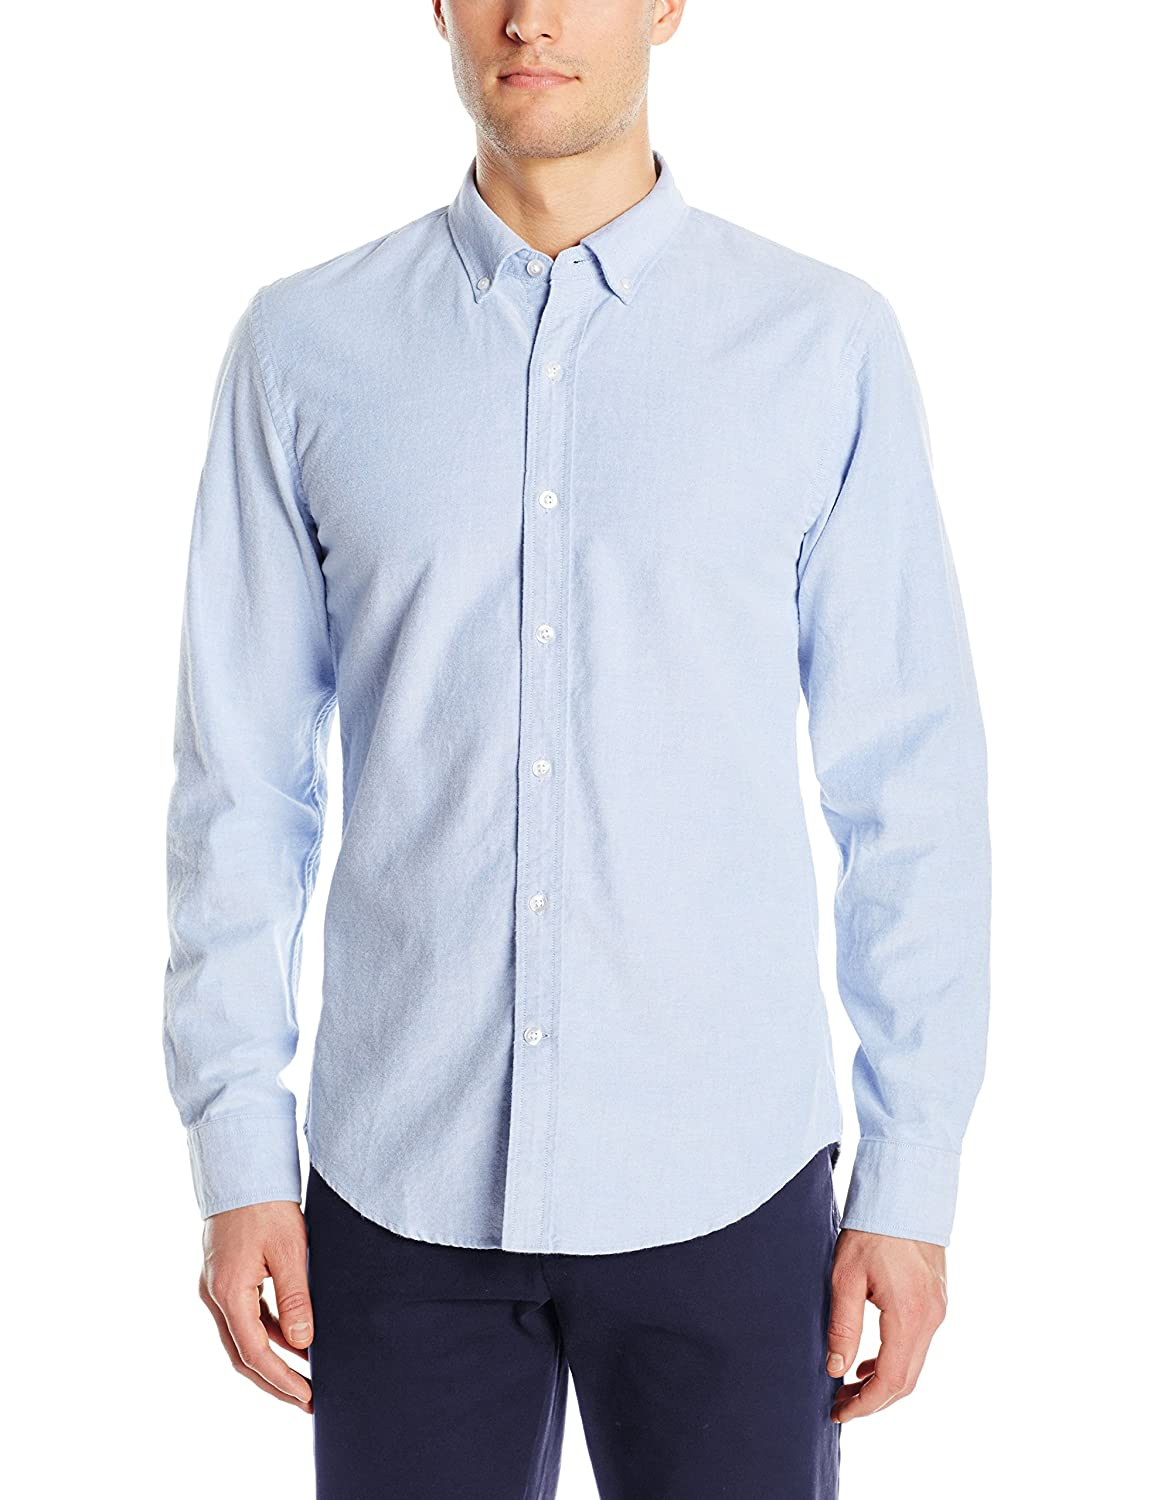 Images of mens pale pink shirt best fashion trends and for Men oxford slim fit long sleeve shirt